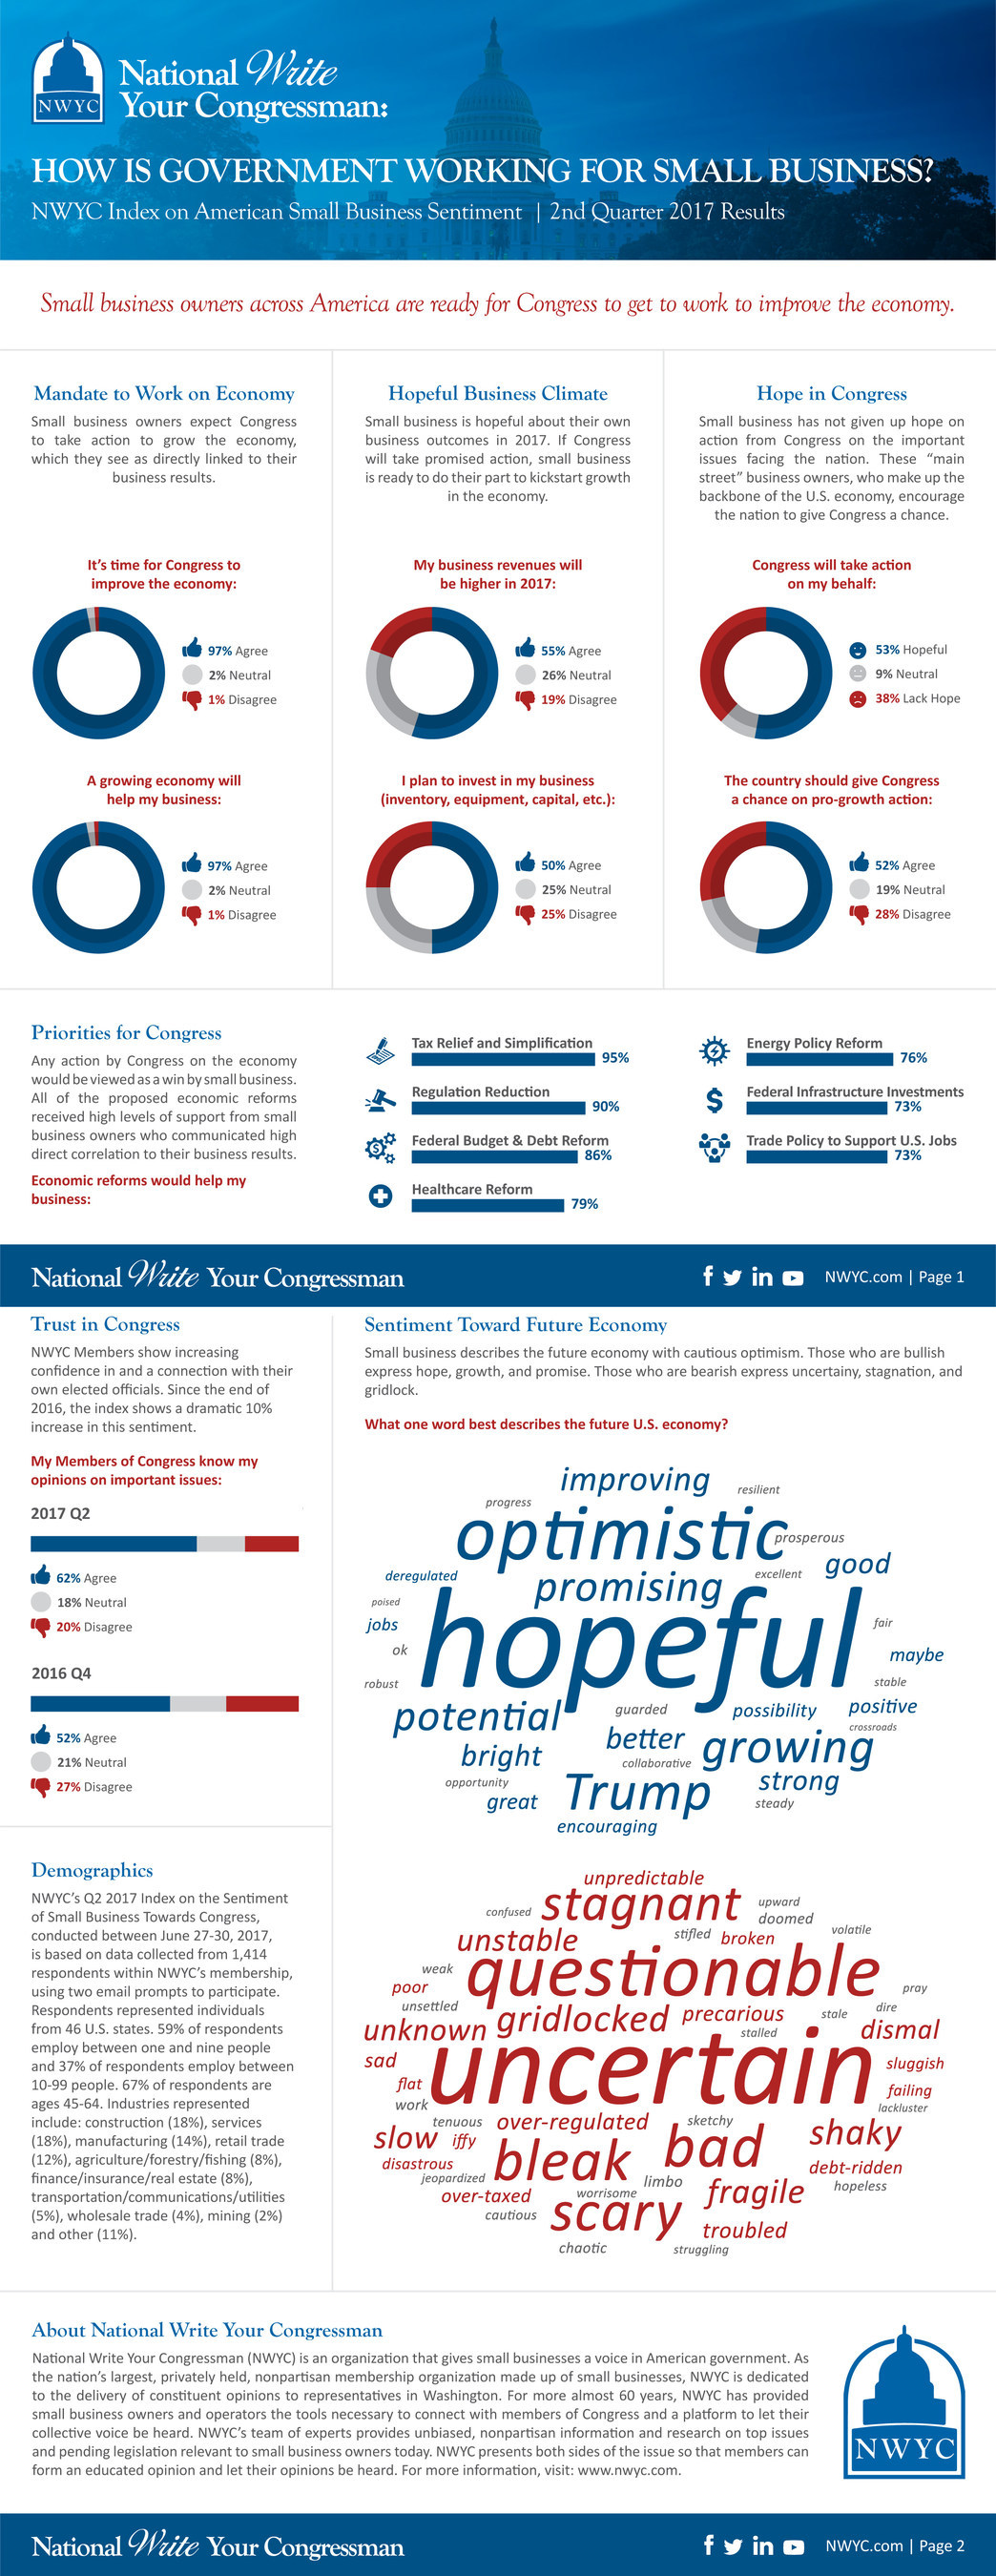 It is time for Congress to get to work for small business! See National Write Your Congressman's Q2 Index on small business sentiment toward Congress.